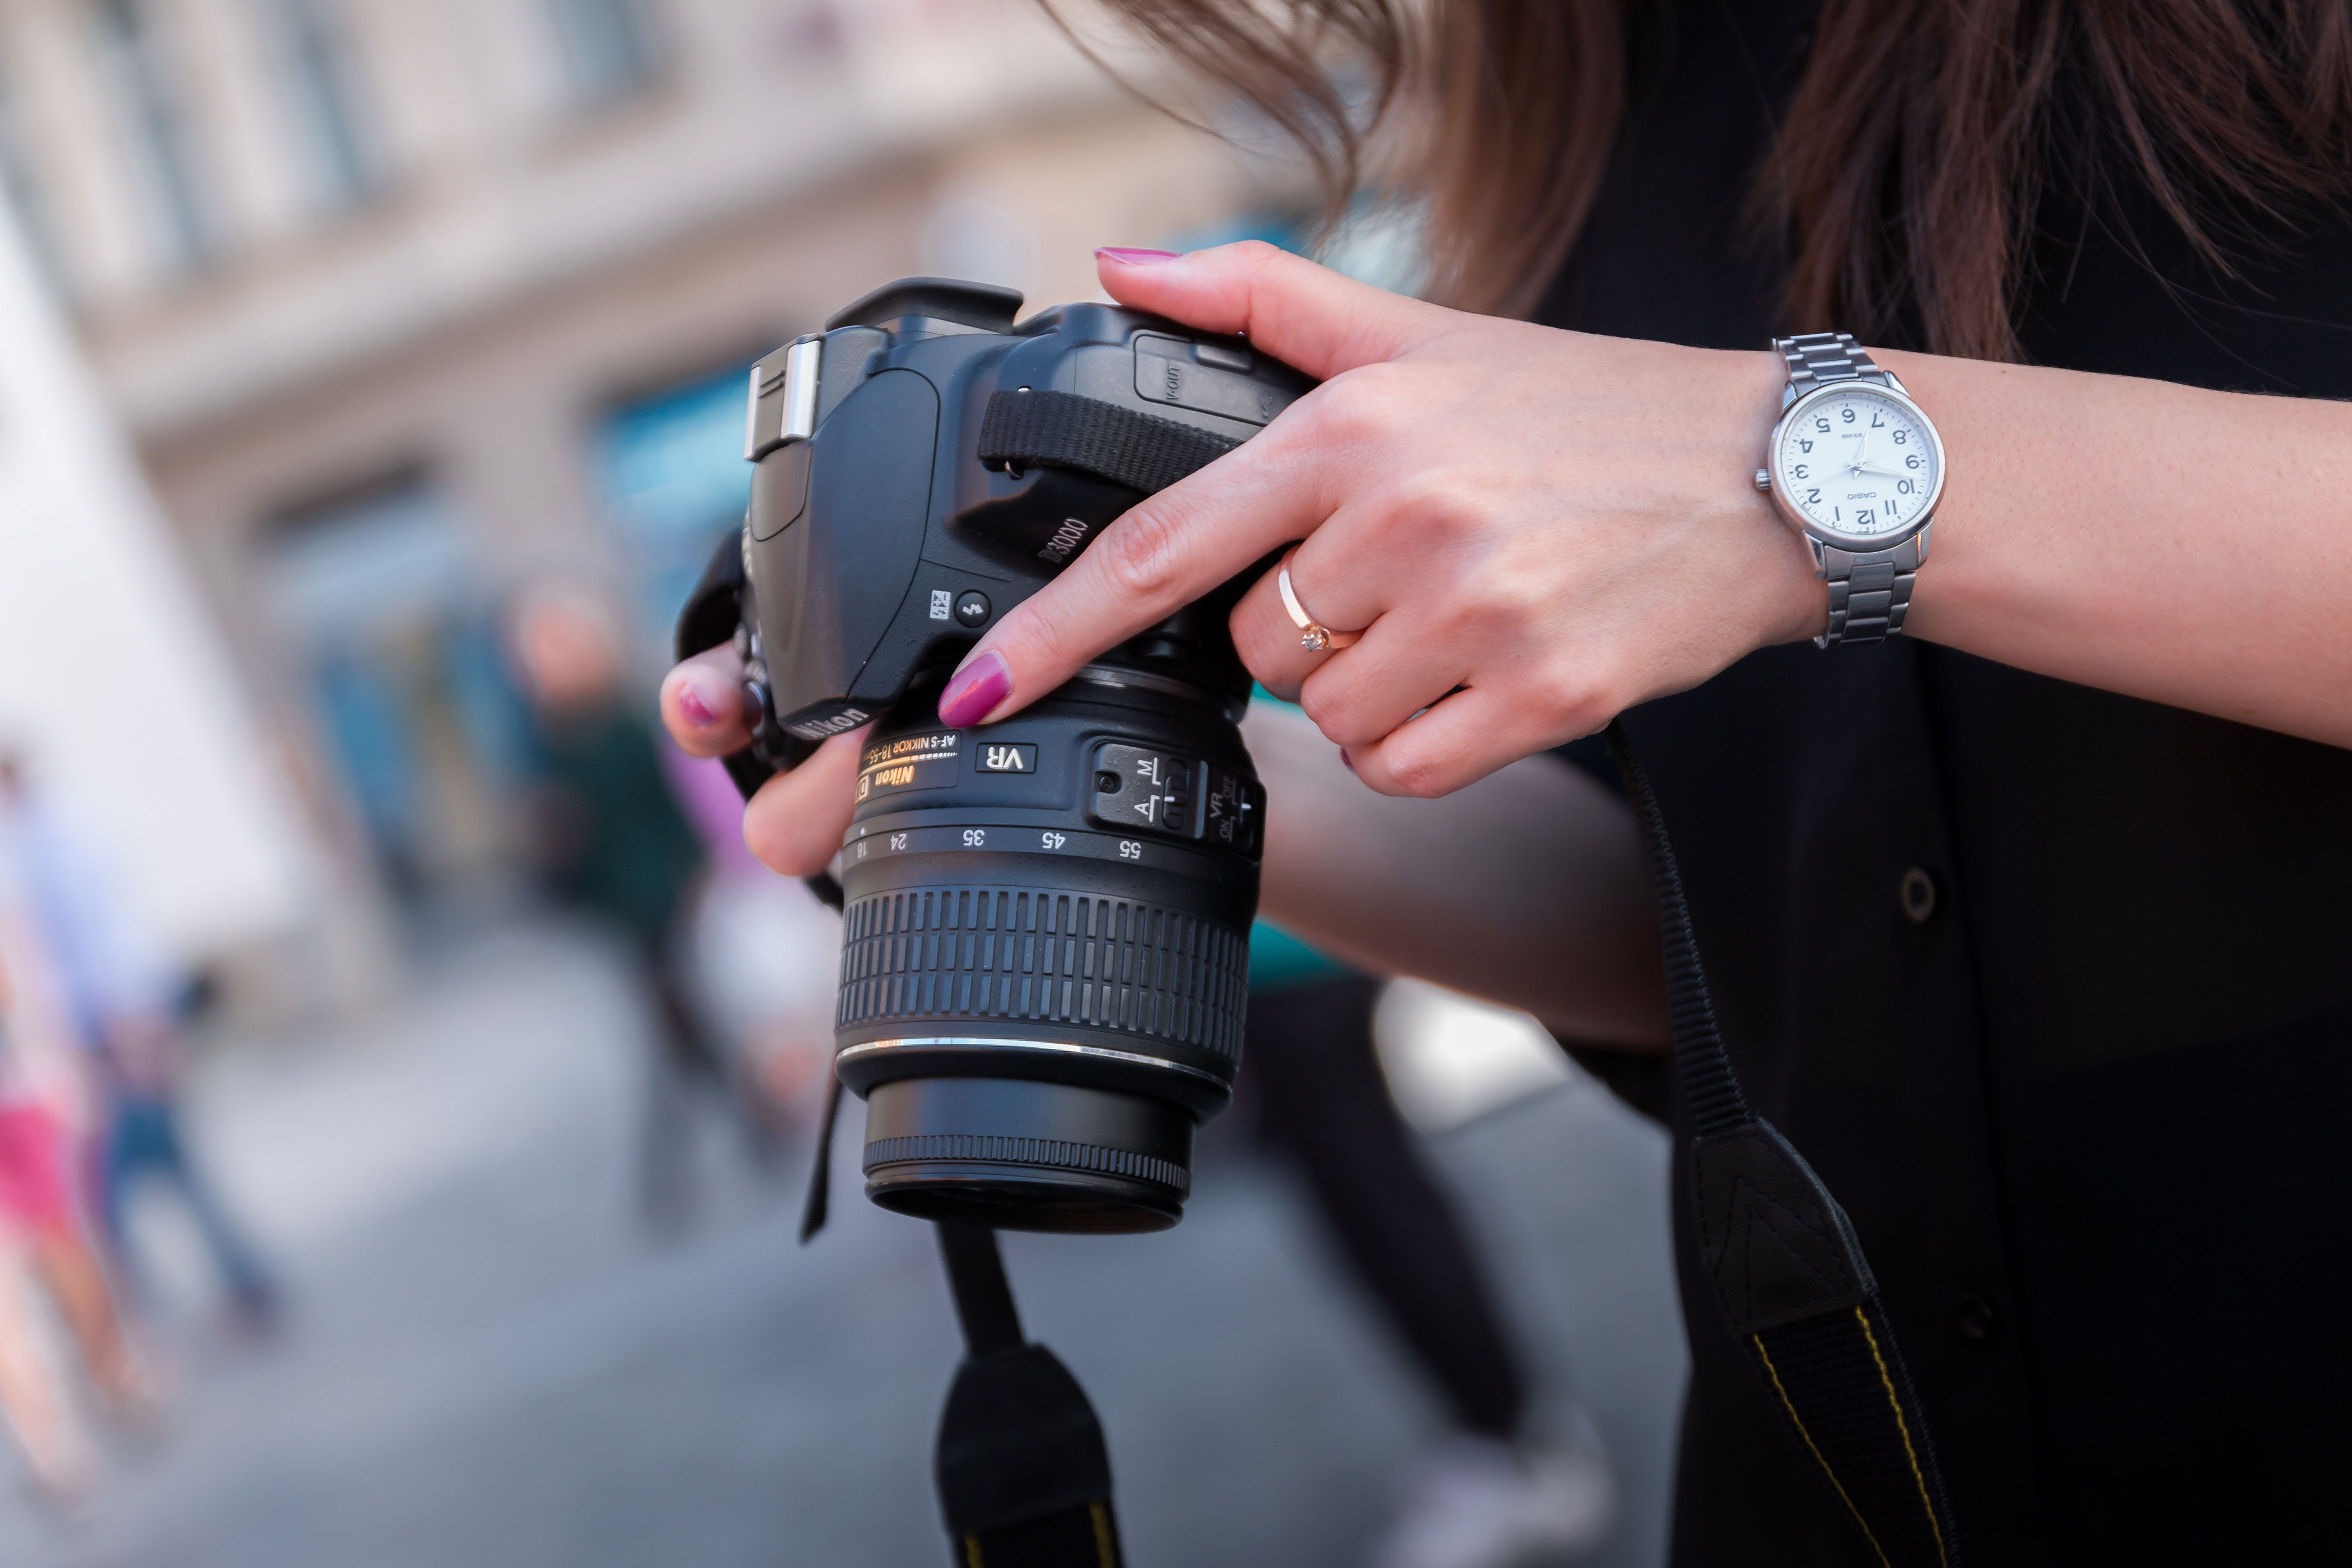 Woman Holding Black Dslr Camera, Adult, Lens, Watch, Technology, HQ Photo